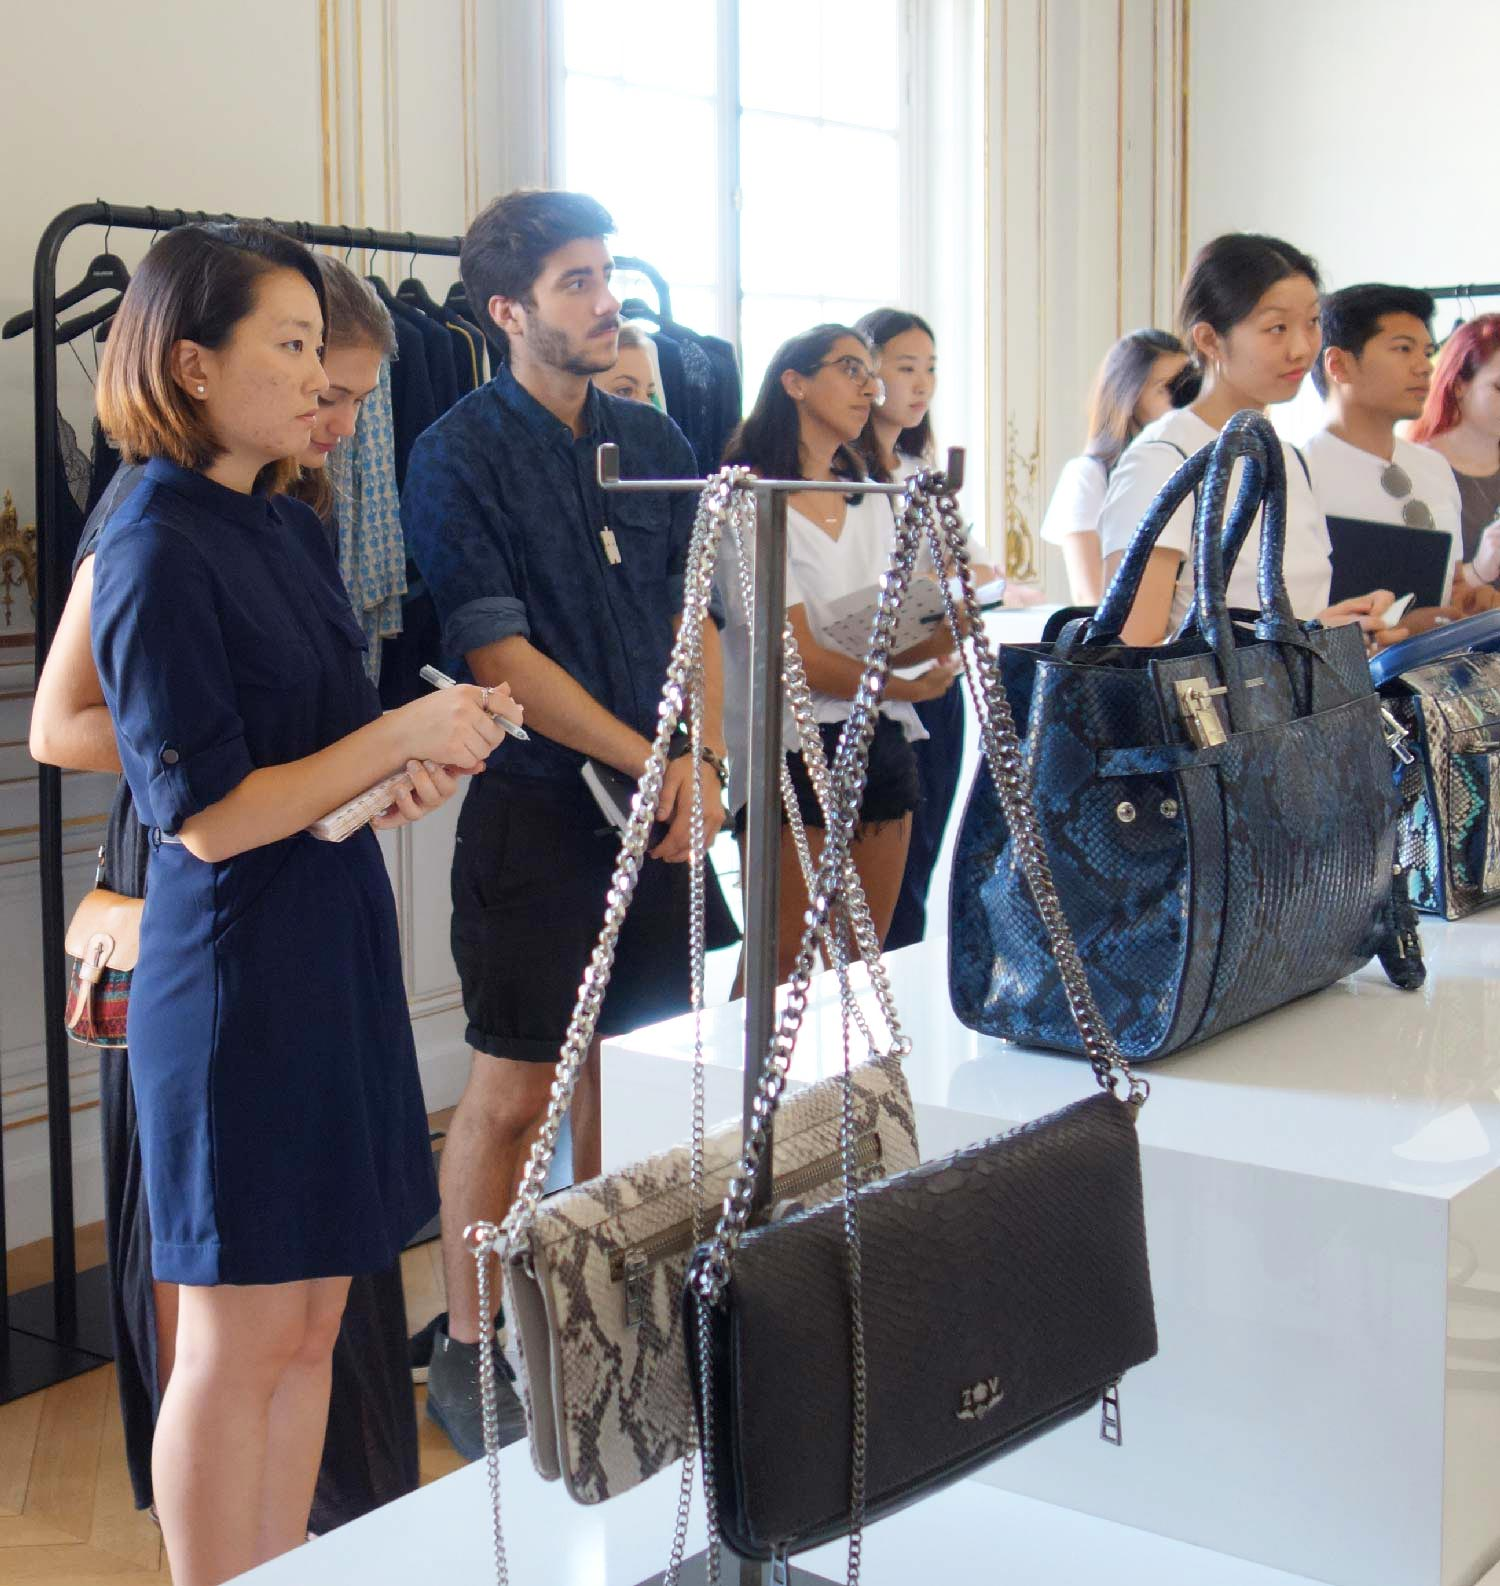 LAUNCH OF PARTNERSHIP WITH ZADIG & VOLTAIRE